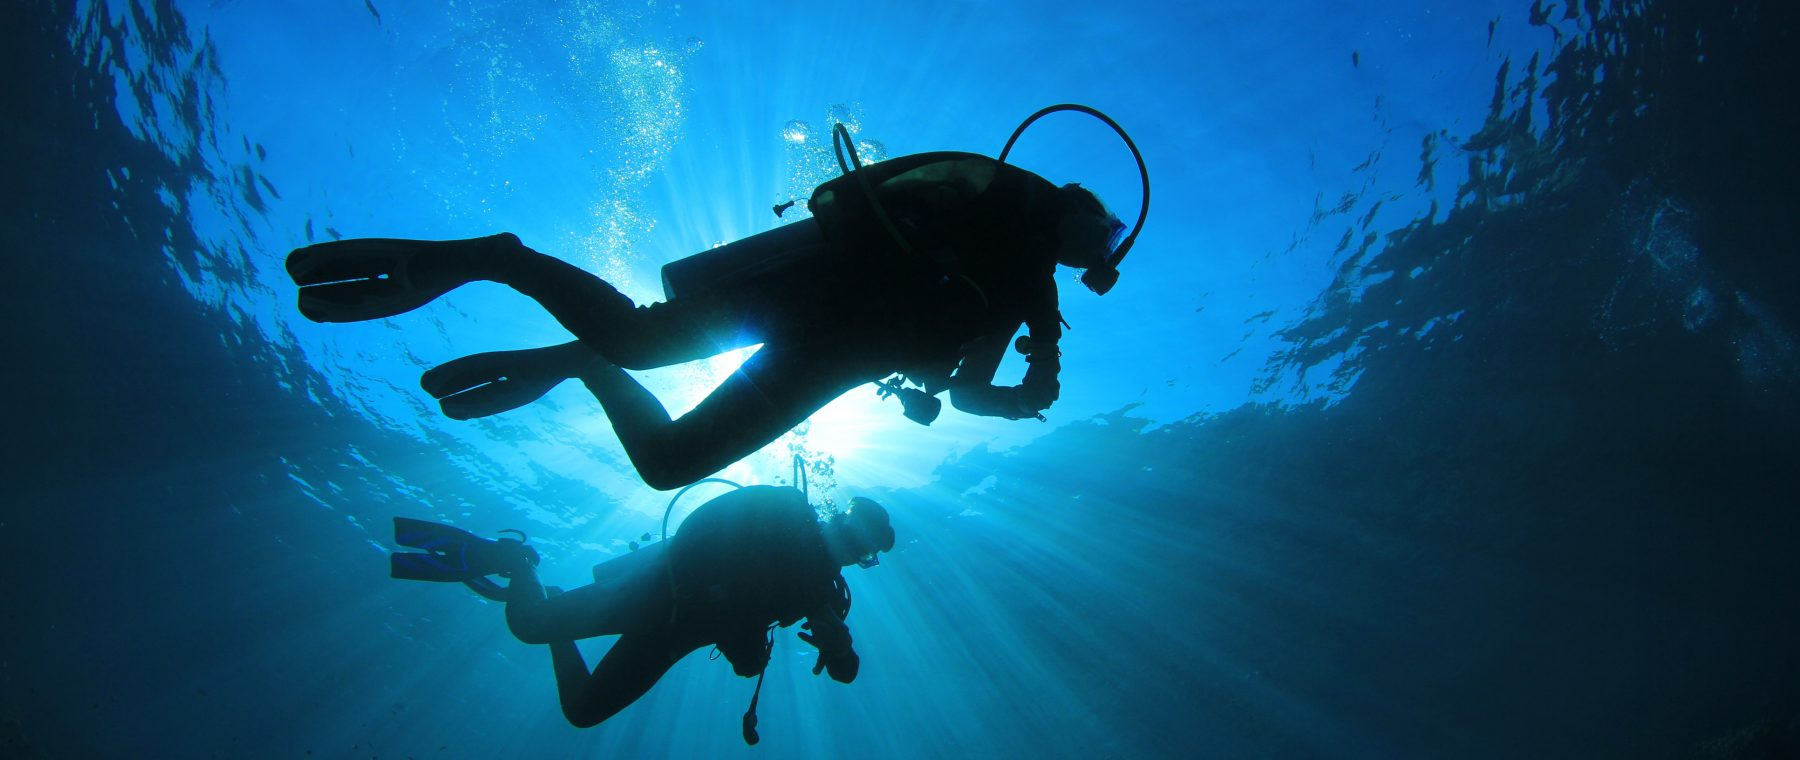 When to Use Diving Inspections in Port Maintenance?